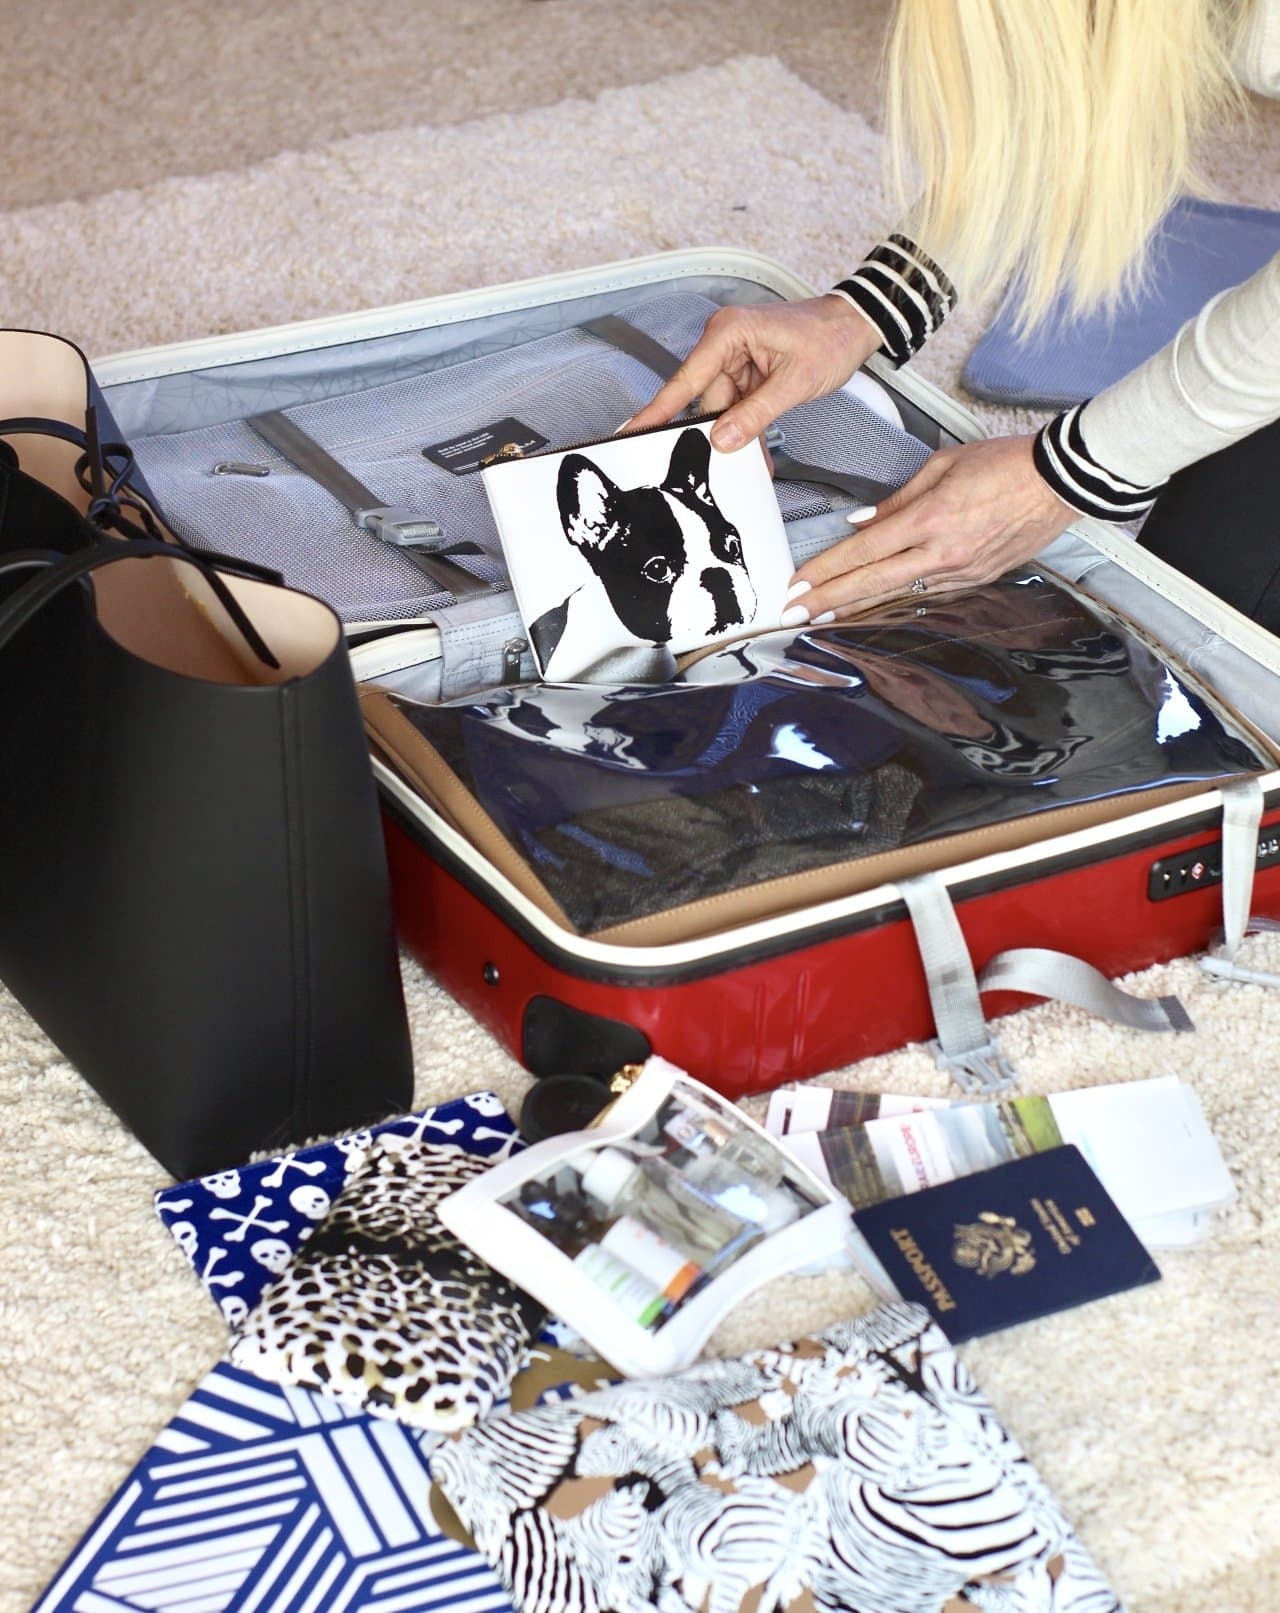 Organizer bags. The very best organizer bags for travel.